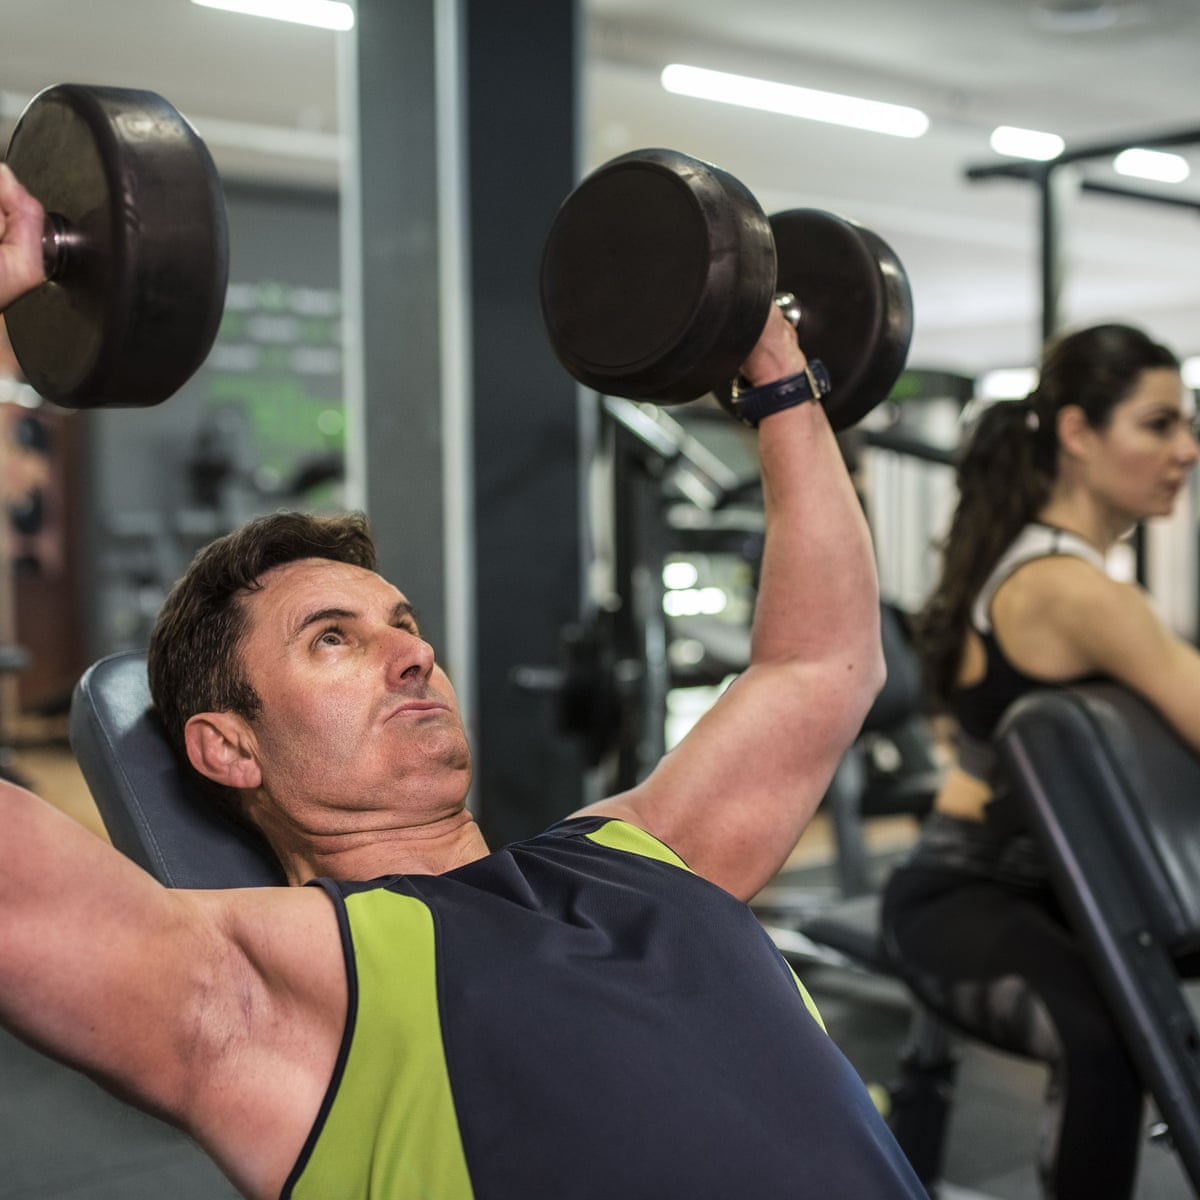 More Middle Aged Men Taking Steroids To Look Younger Life And Style The Guardian